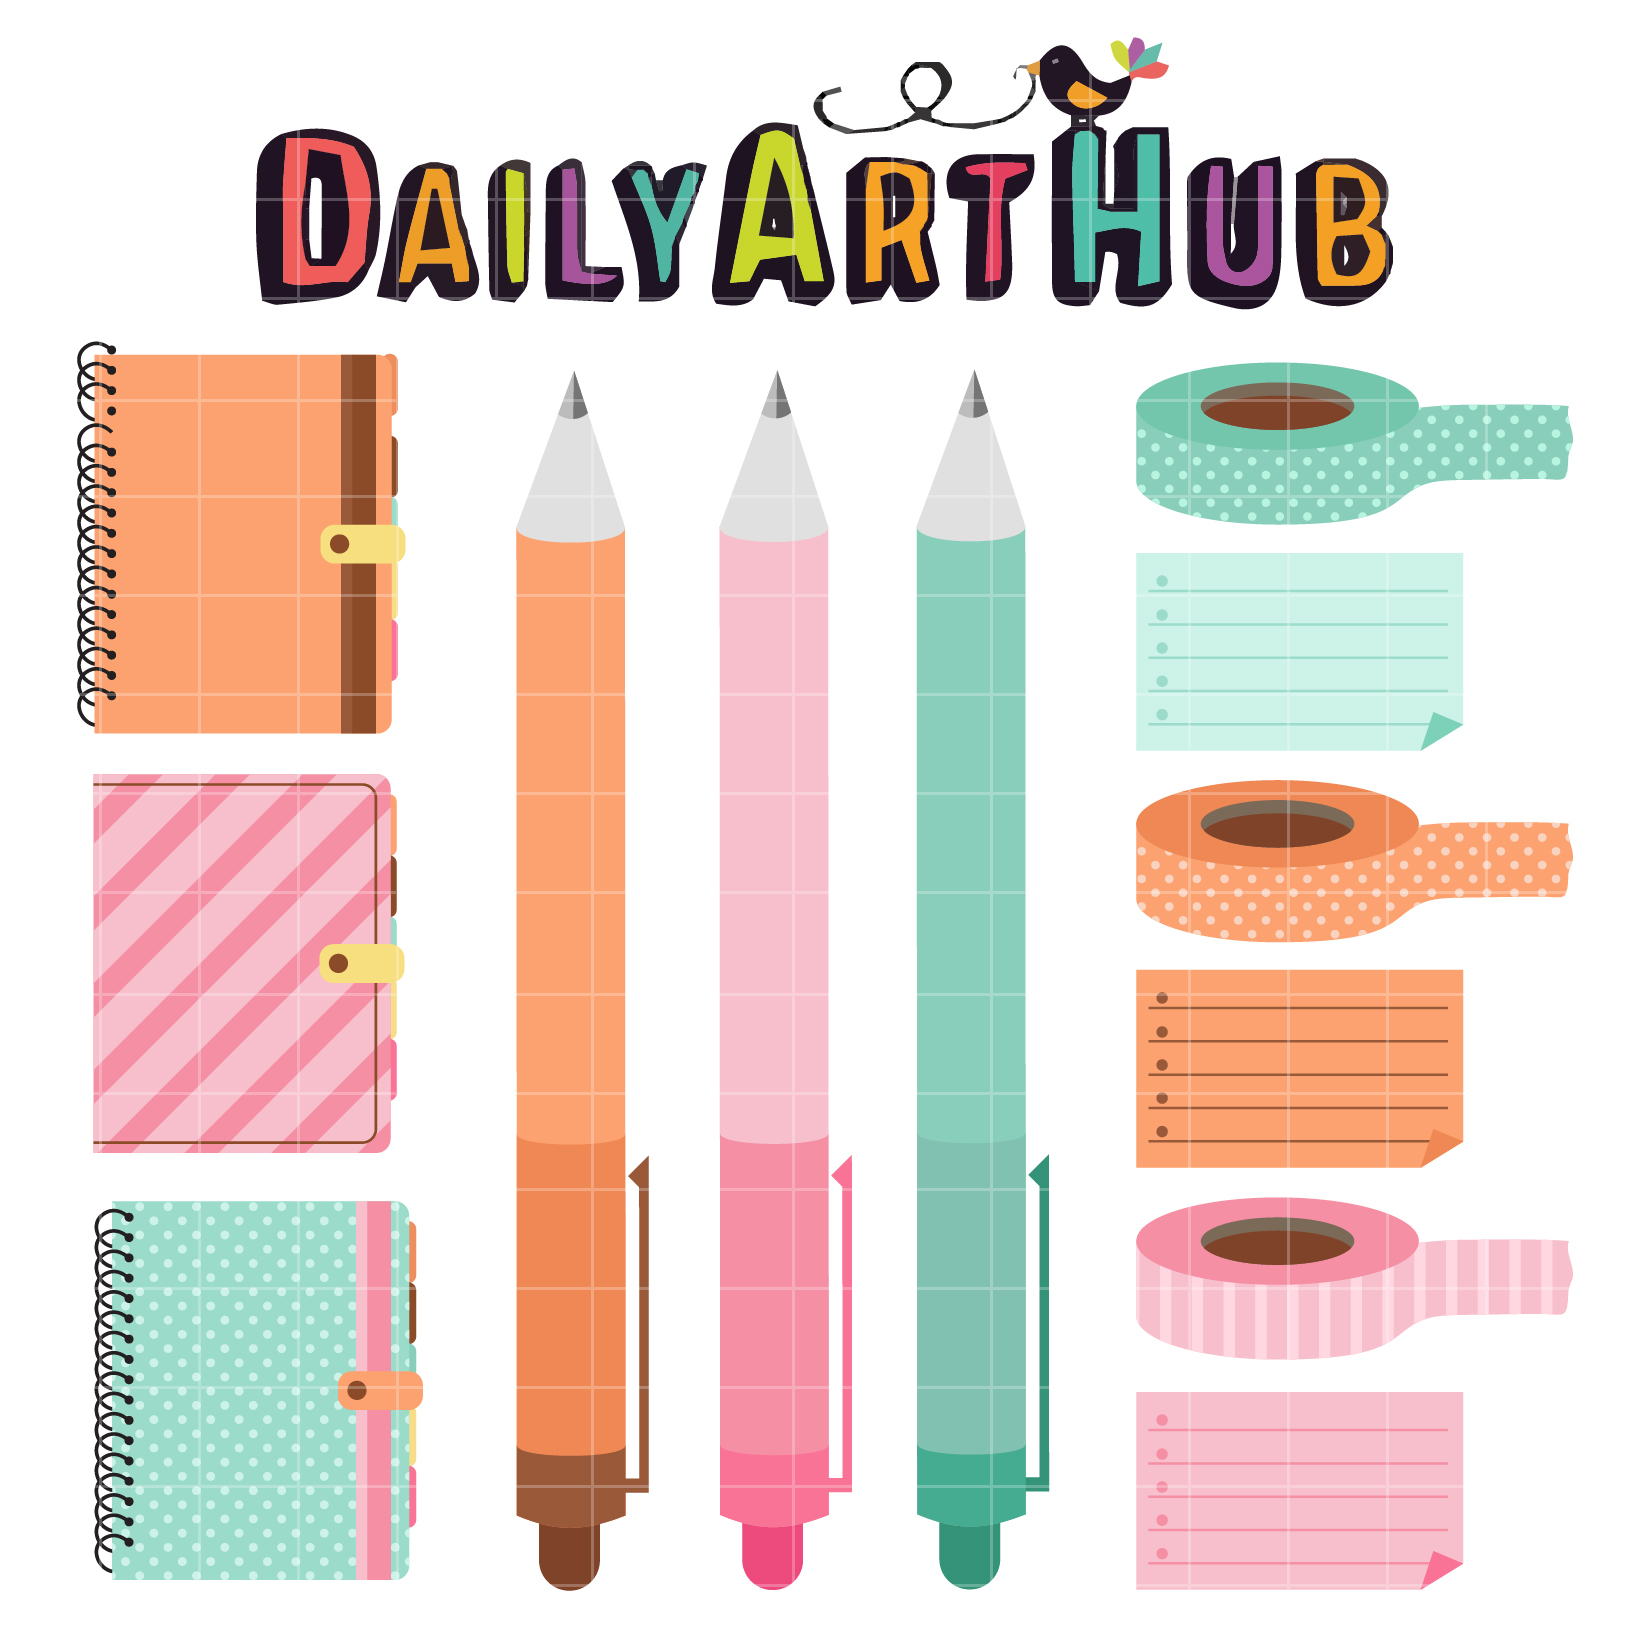 Daily Calendar Clipart : Colorful planner clip art set daily hub free